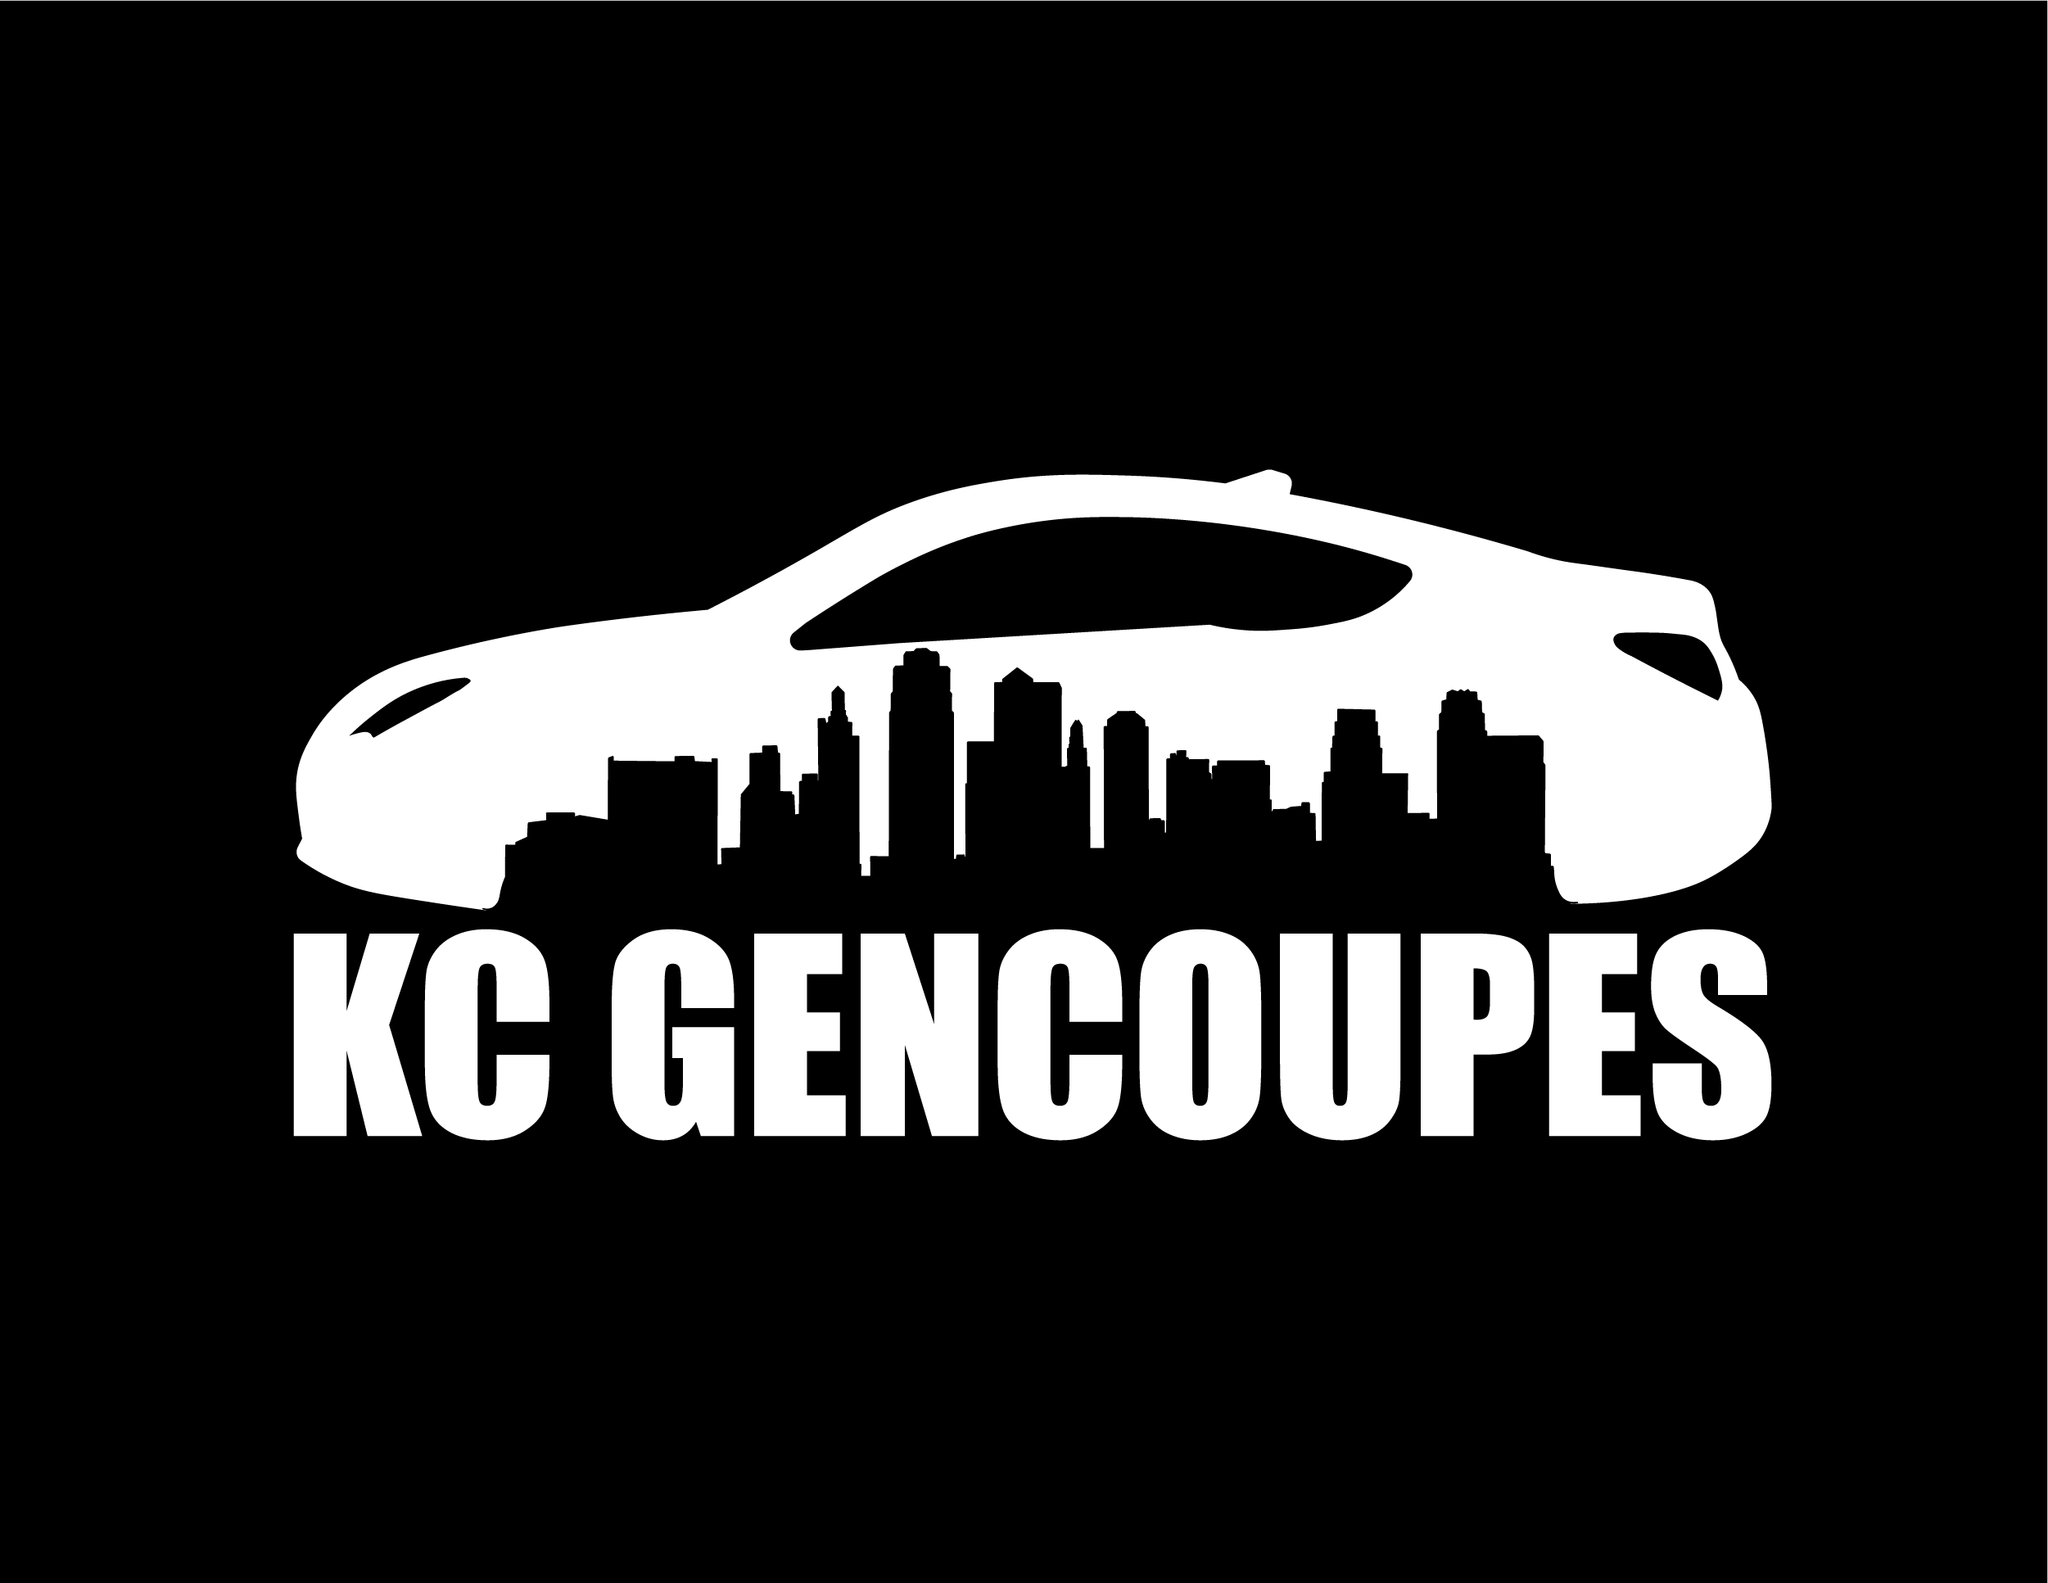 KC GenCoupes Decal